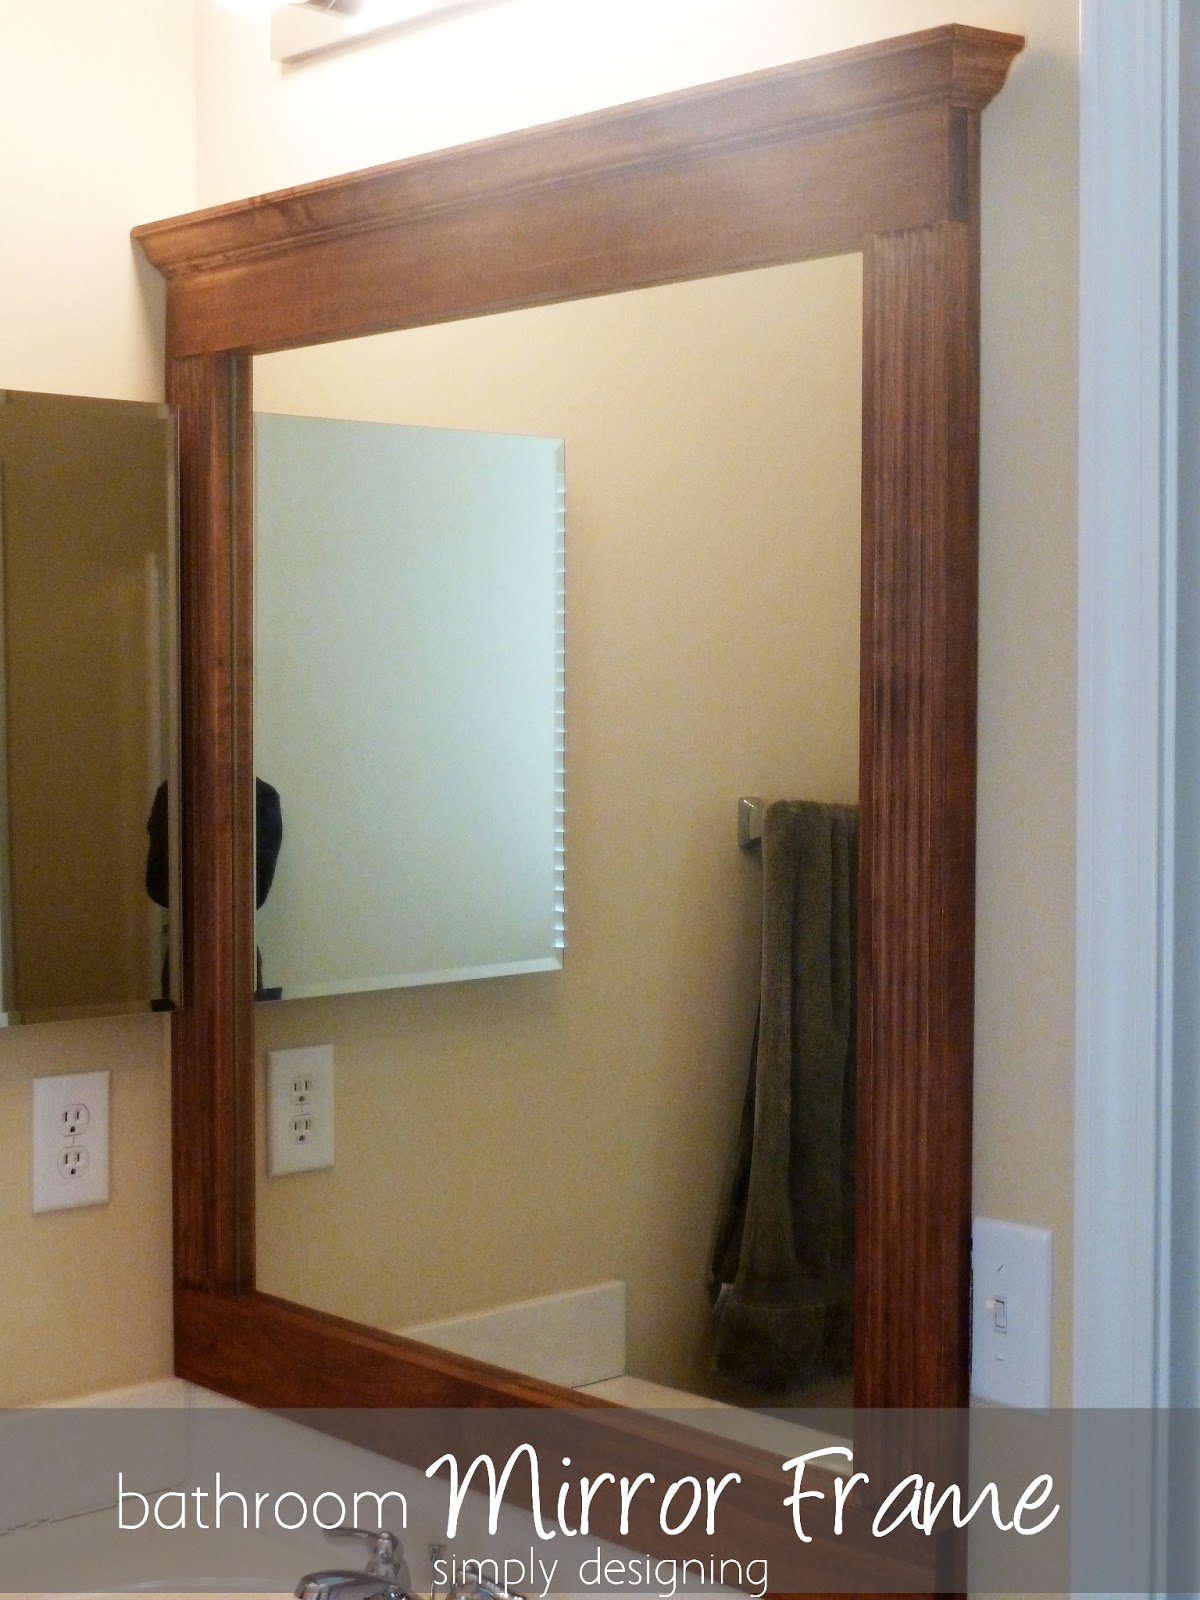 Frame a bathroom mirror with molding -  The Tape In Between The Mirror Frame And The Wall And It Worked Perfectly The Frame Is Perfectly Flush To The Wall And Totally Upgrades Our Bathroom